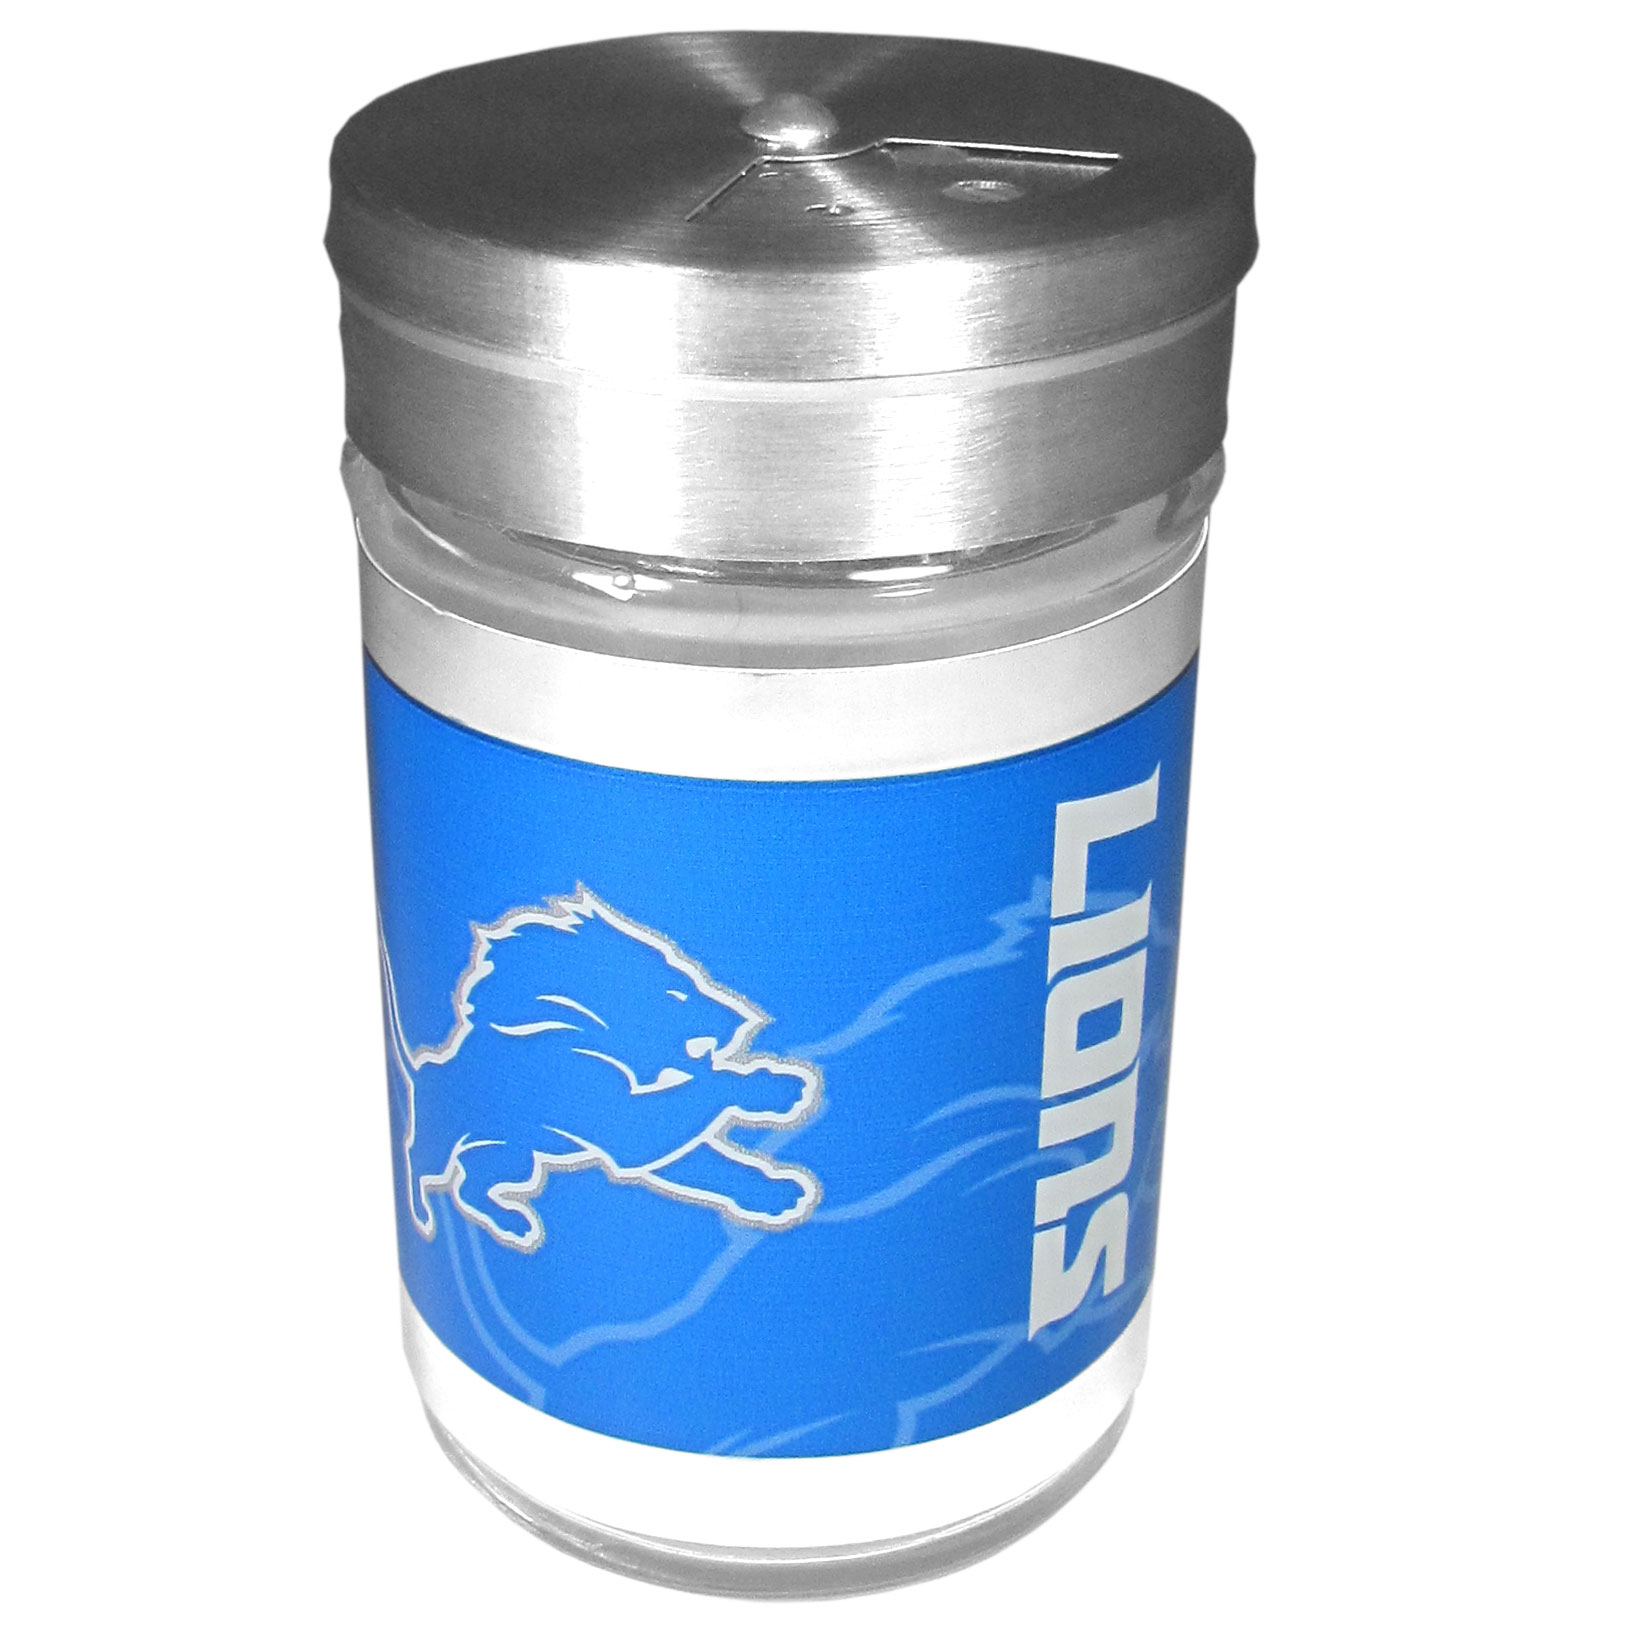 Detroit Lions Tailgater Season Shakers - Spice it up with our Detroit Lions tailgater season shakers! This compact shaker is 2 inch tall with a twist top that closes off the holes at the top making it perfect for travel preventing those messy spills. The shaker has wide holes perfect for keeping your pepper seeds or cheese toppings. The bright team graphics will make you the envy of the other fans while you are grilling up your tailgating goodies.